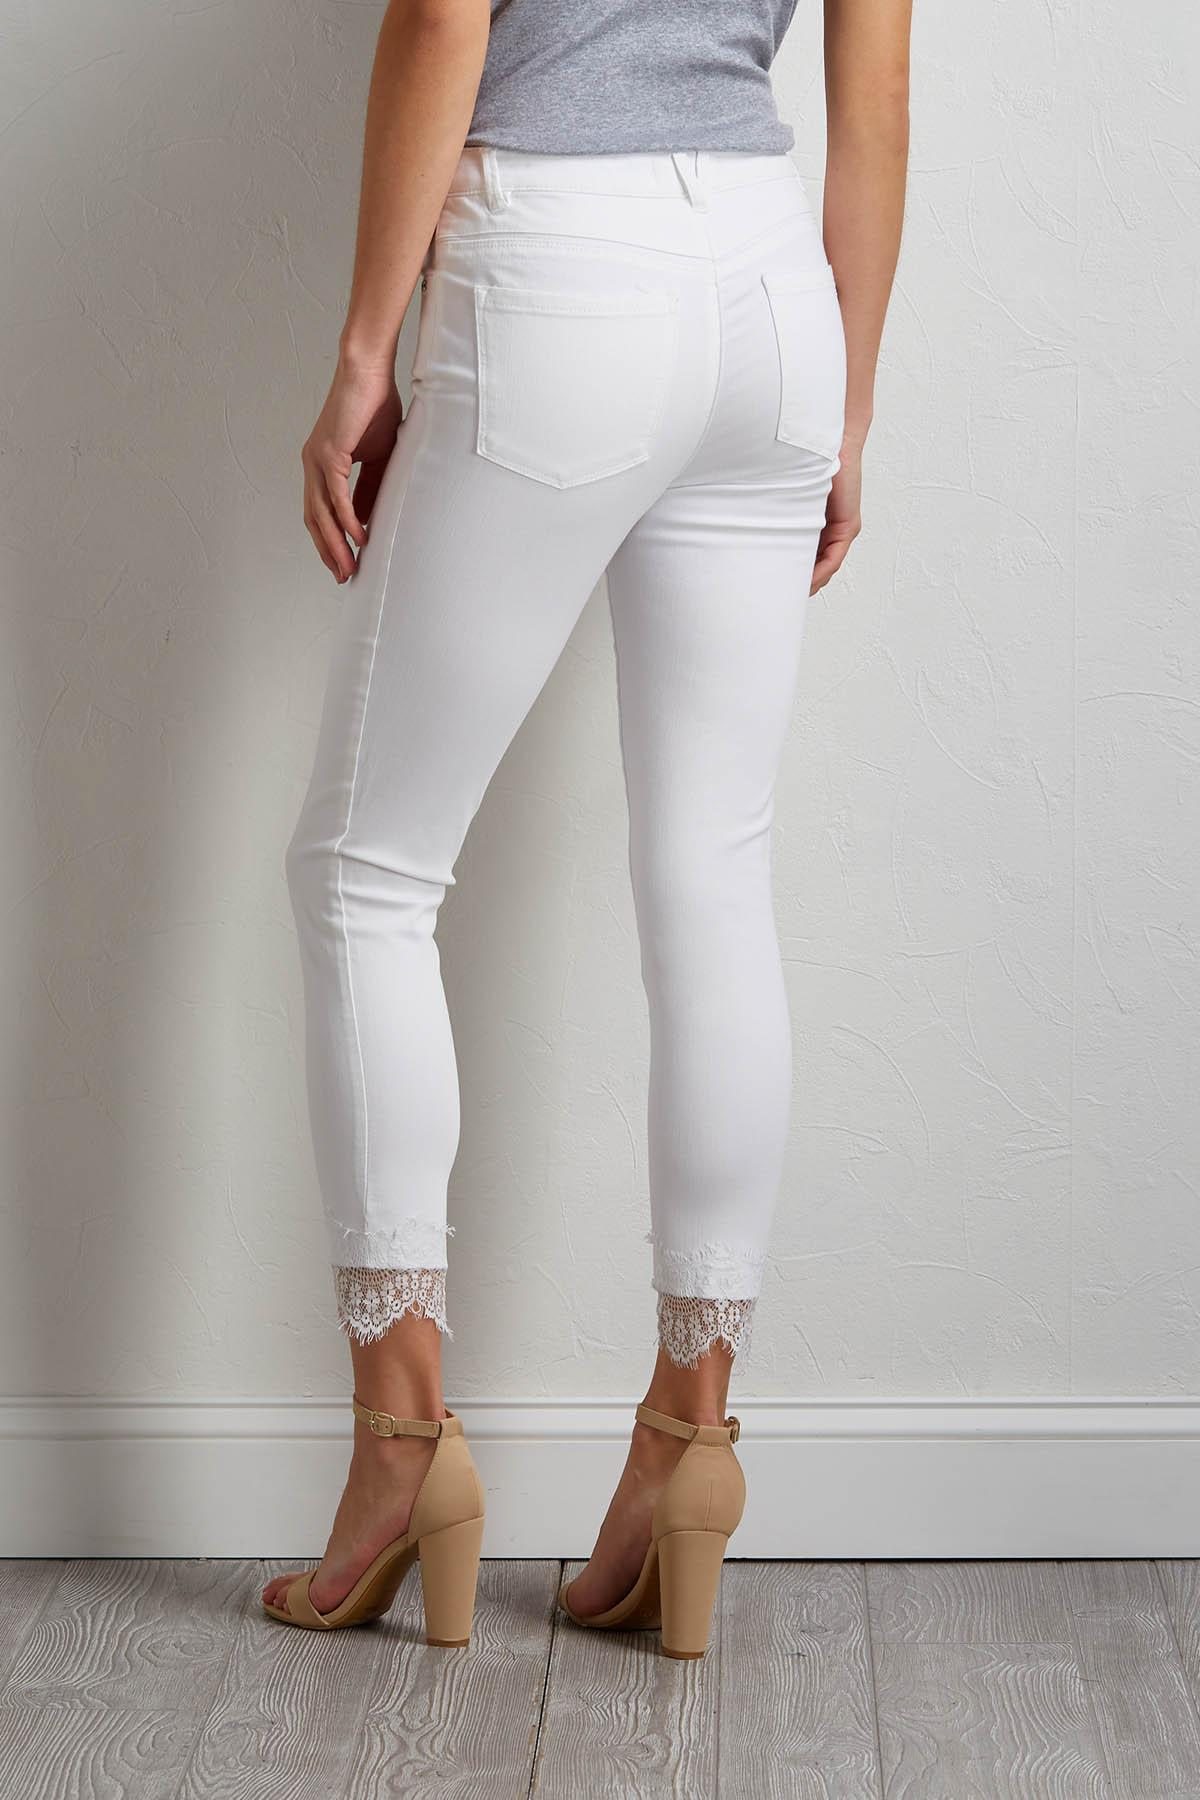 White Lace Trim Jeans